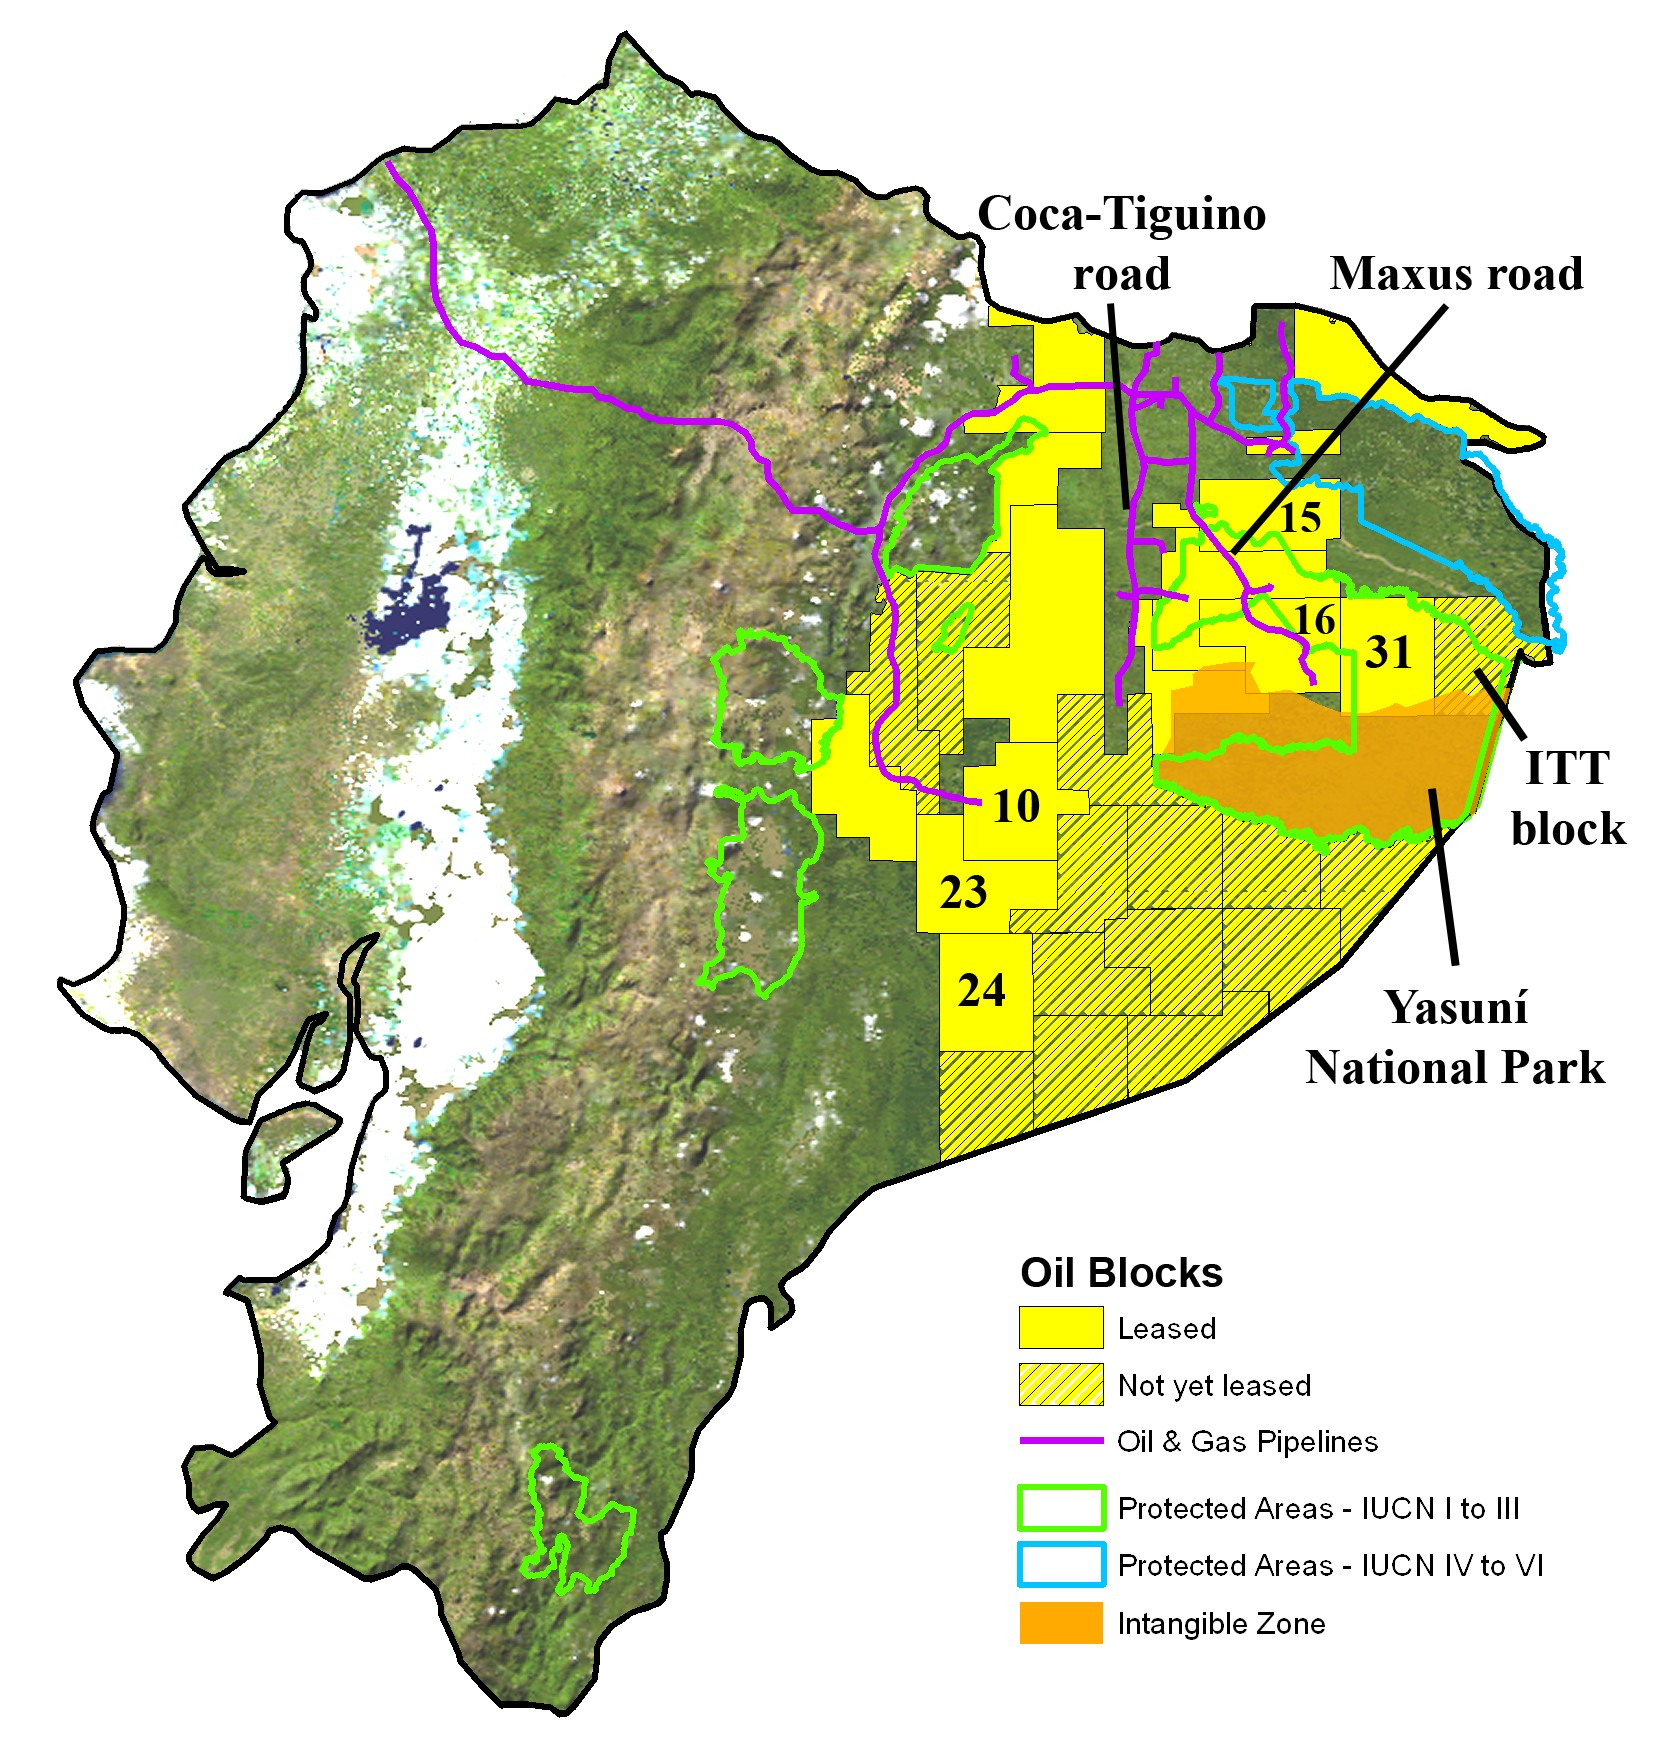 Maps Of Oil Blocks And Biodiversity In The Western Amazon - Map us oil fields